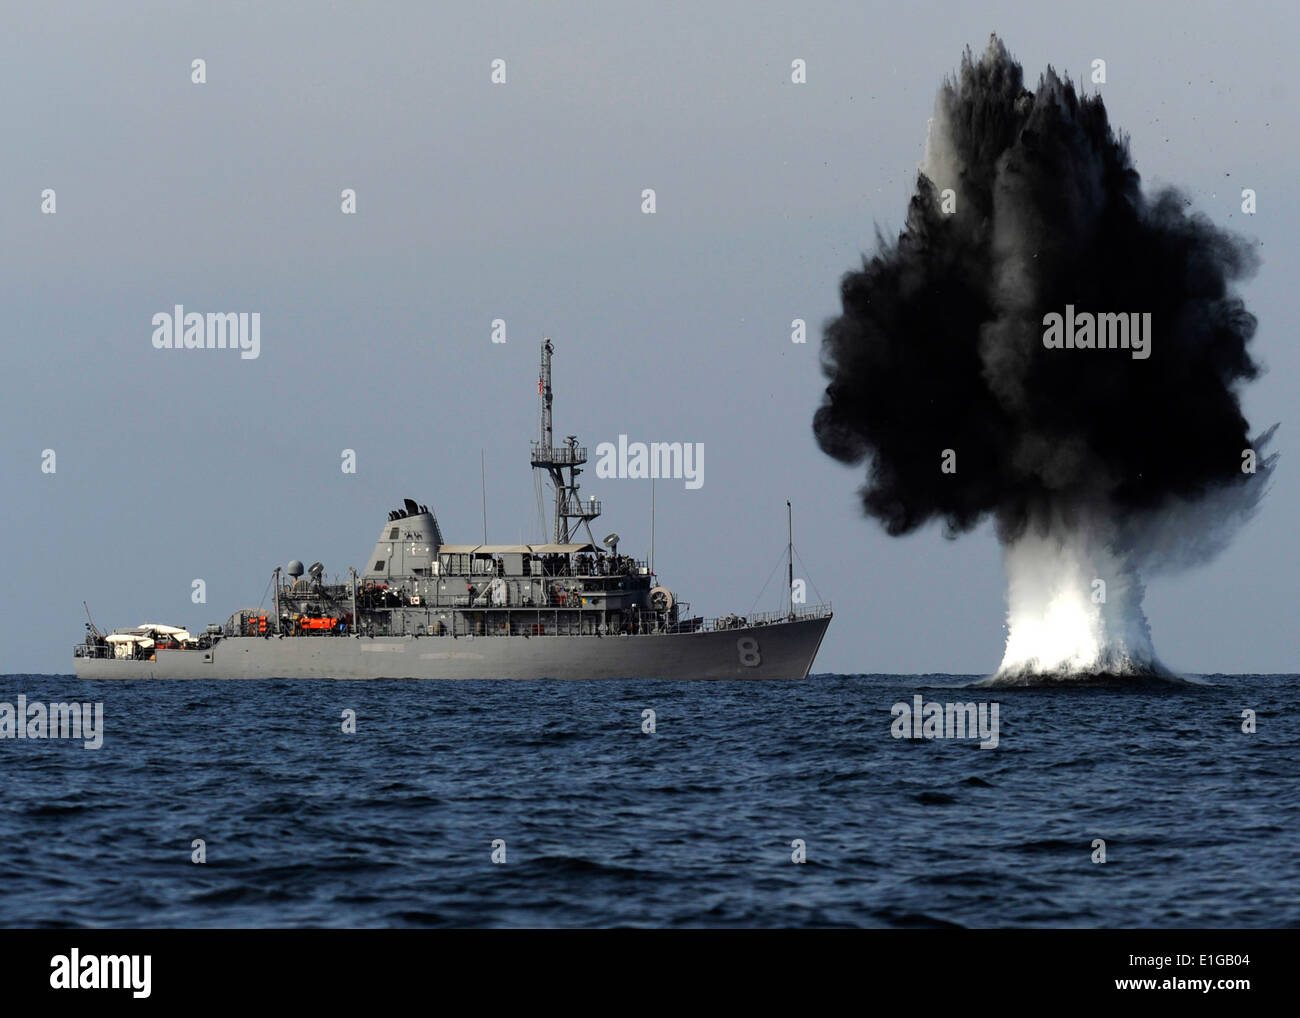 101119-N-6266K-023 STRAITS OF HORMUZ (Nov. 19, 2010) A demolition charge detonates 1,500 meters from Avenger-class Stock Photo